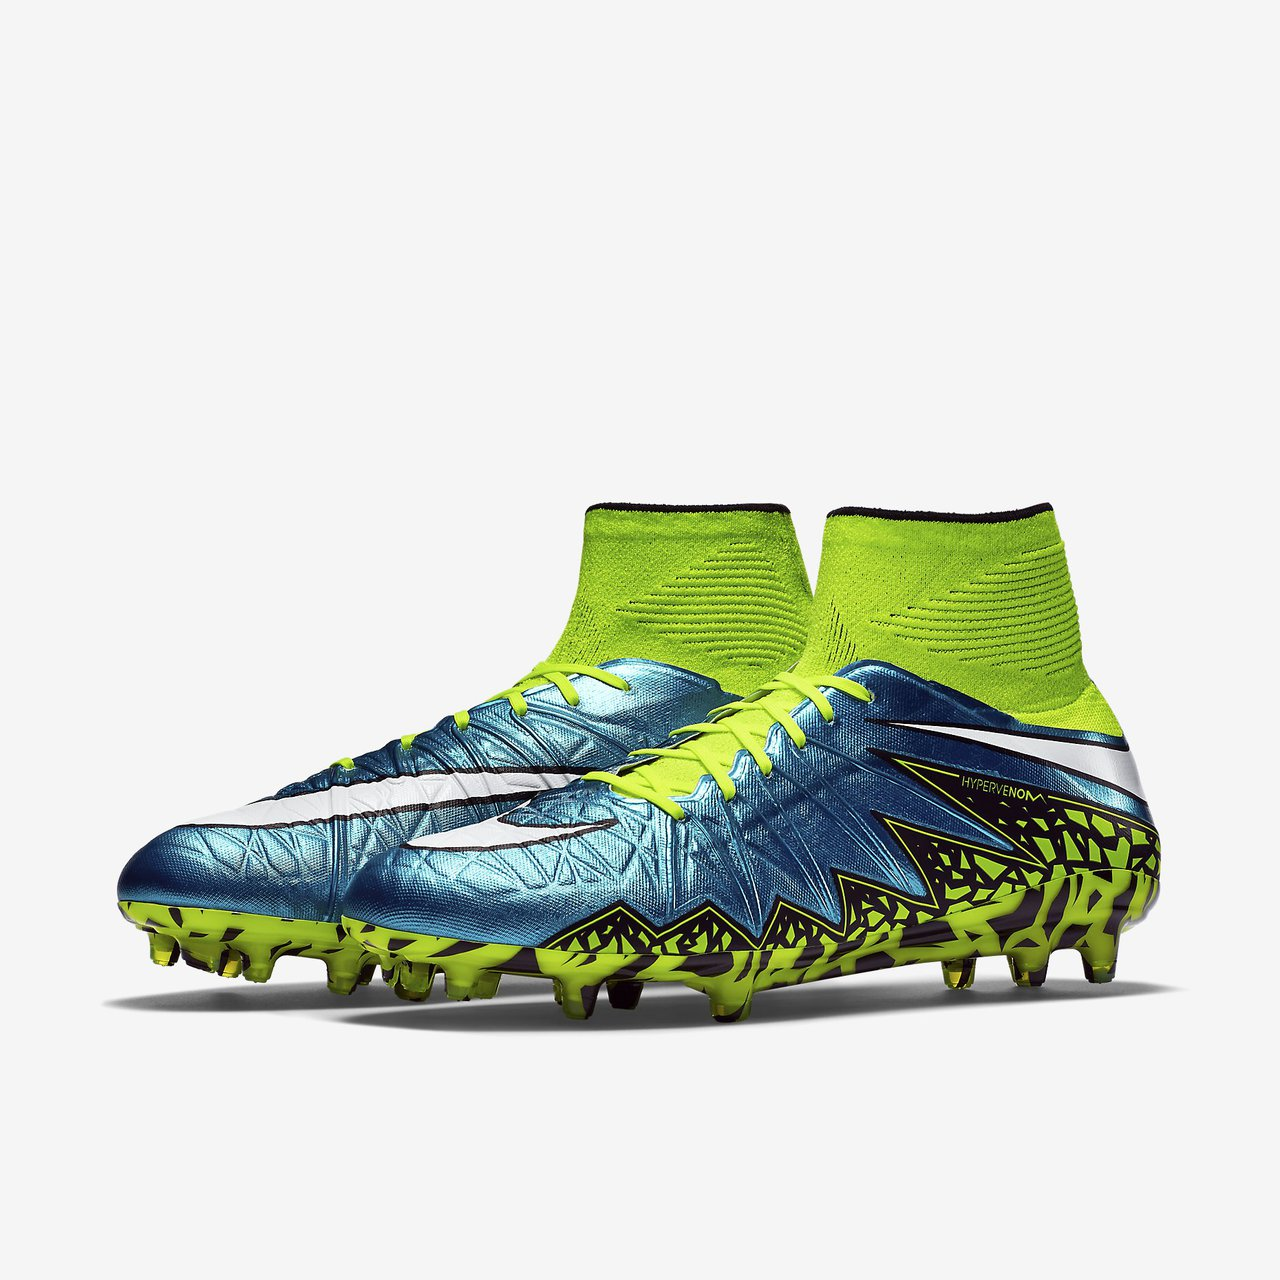 c3a20e3dc83 ... Click to enlarge image nike-hypervenom-phantom-ii-fg-blue- ...